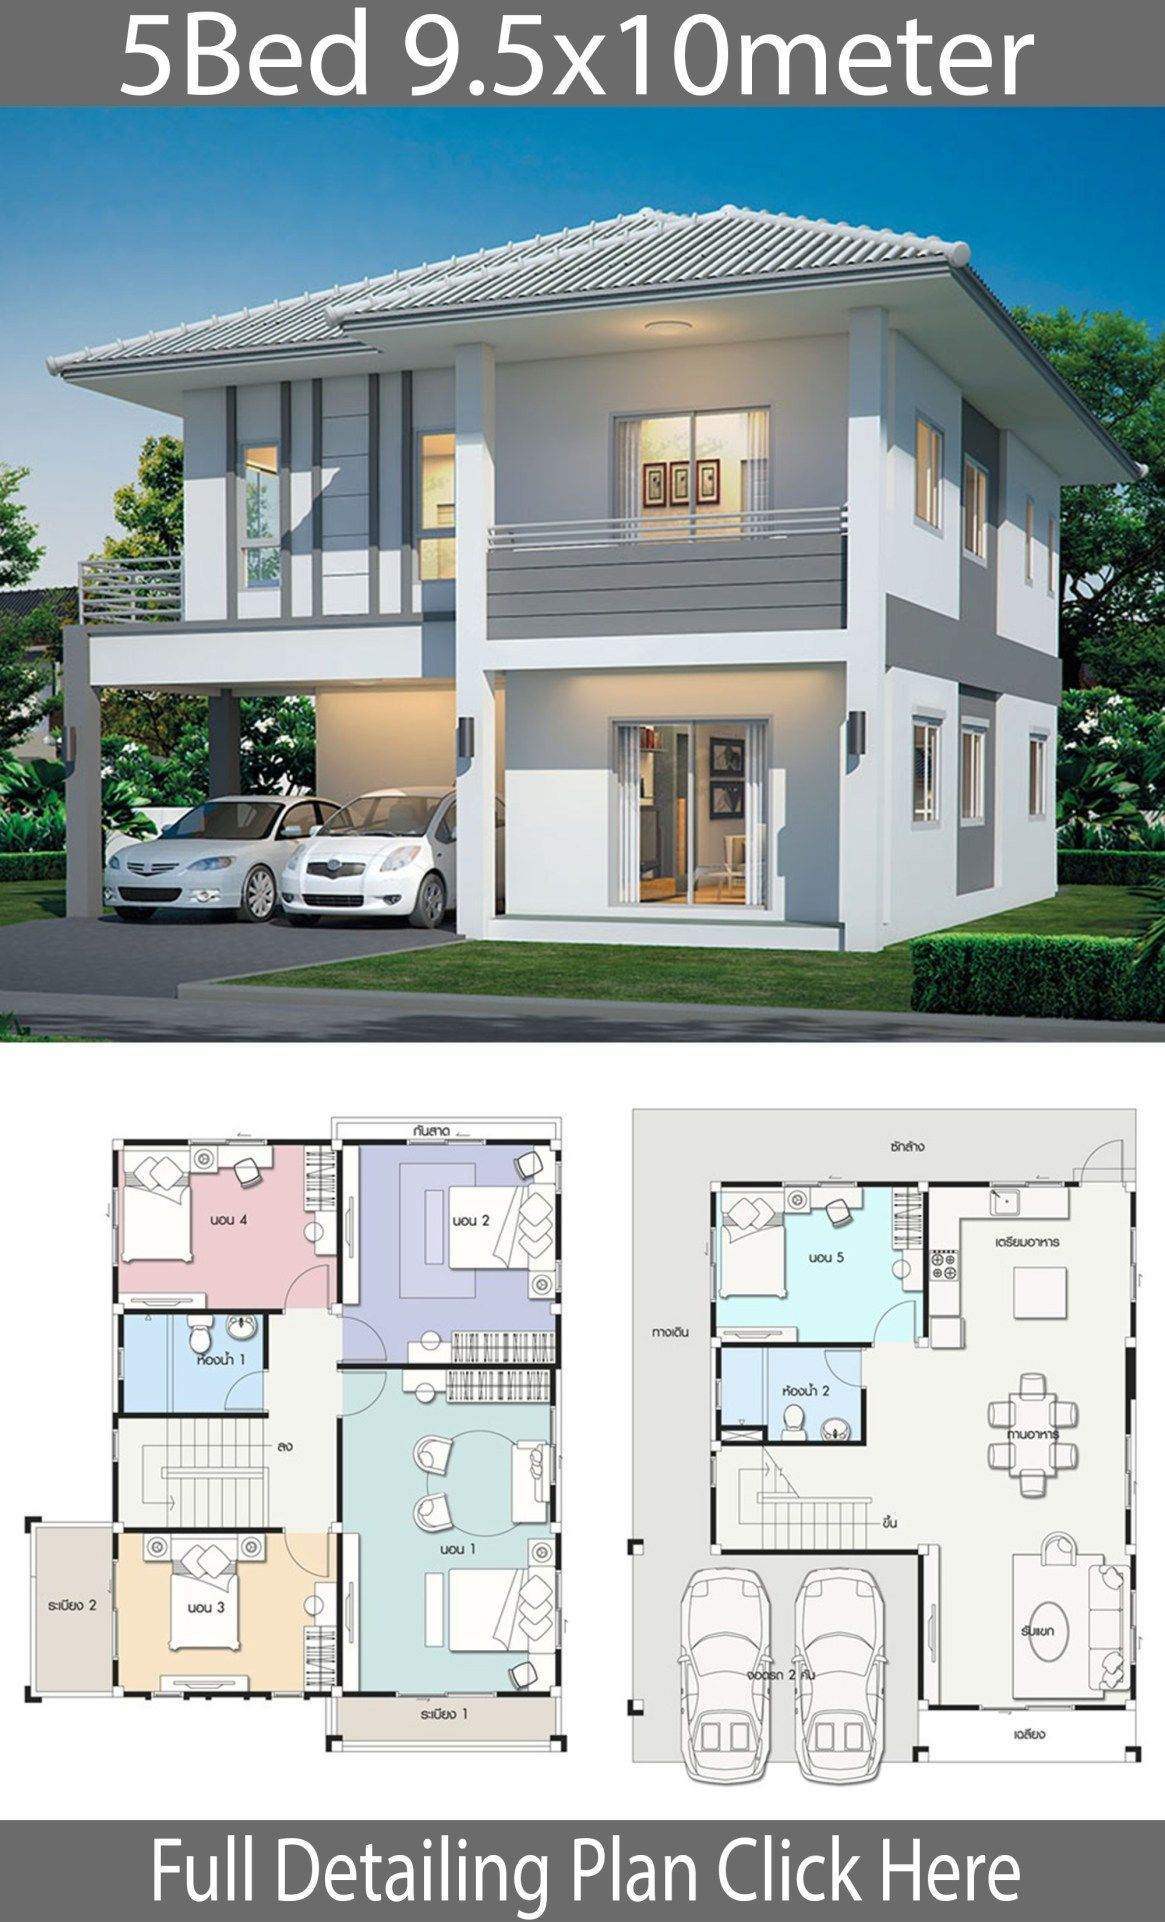 House Design Plan 9 5x10m With 5 Bedrooms Home Ideas 95x10m Bedrooms Design In 2020 House Construction Plan Model House Plan House Plan Gallery